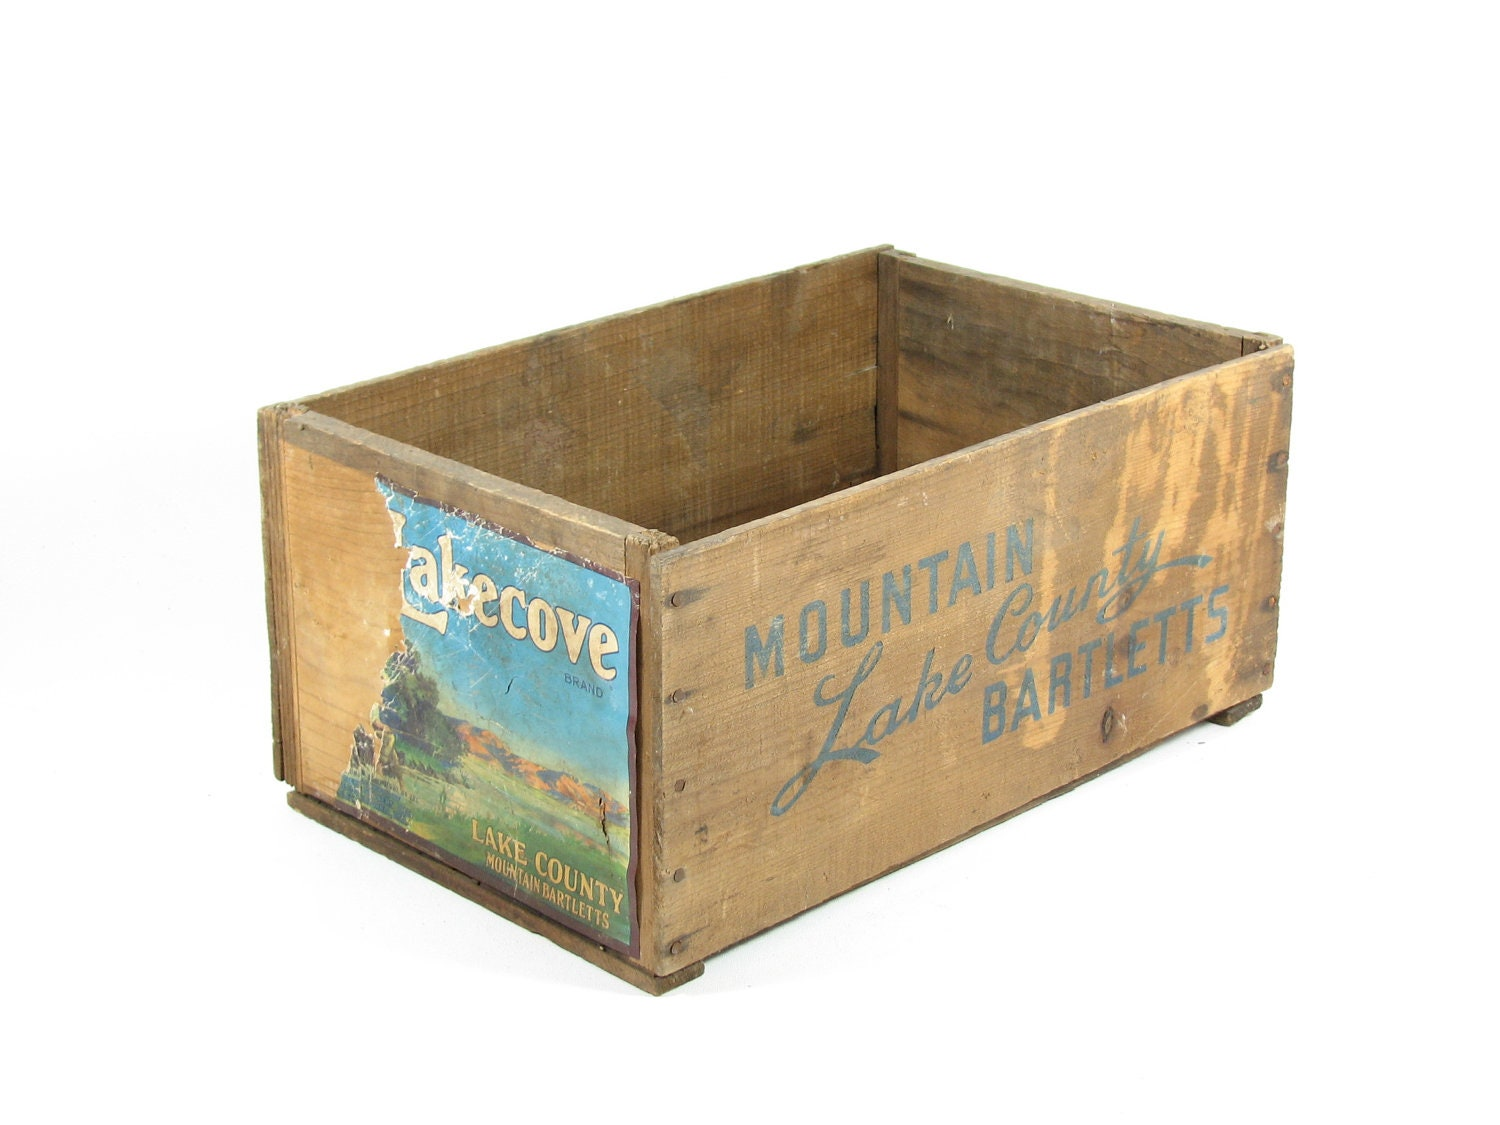 Vintage wood fruit crate wooden box paper label mountain lake for Wooden fruit crates